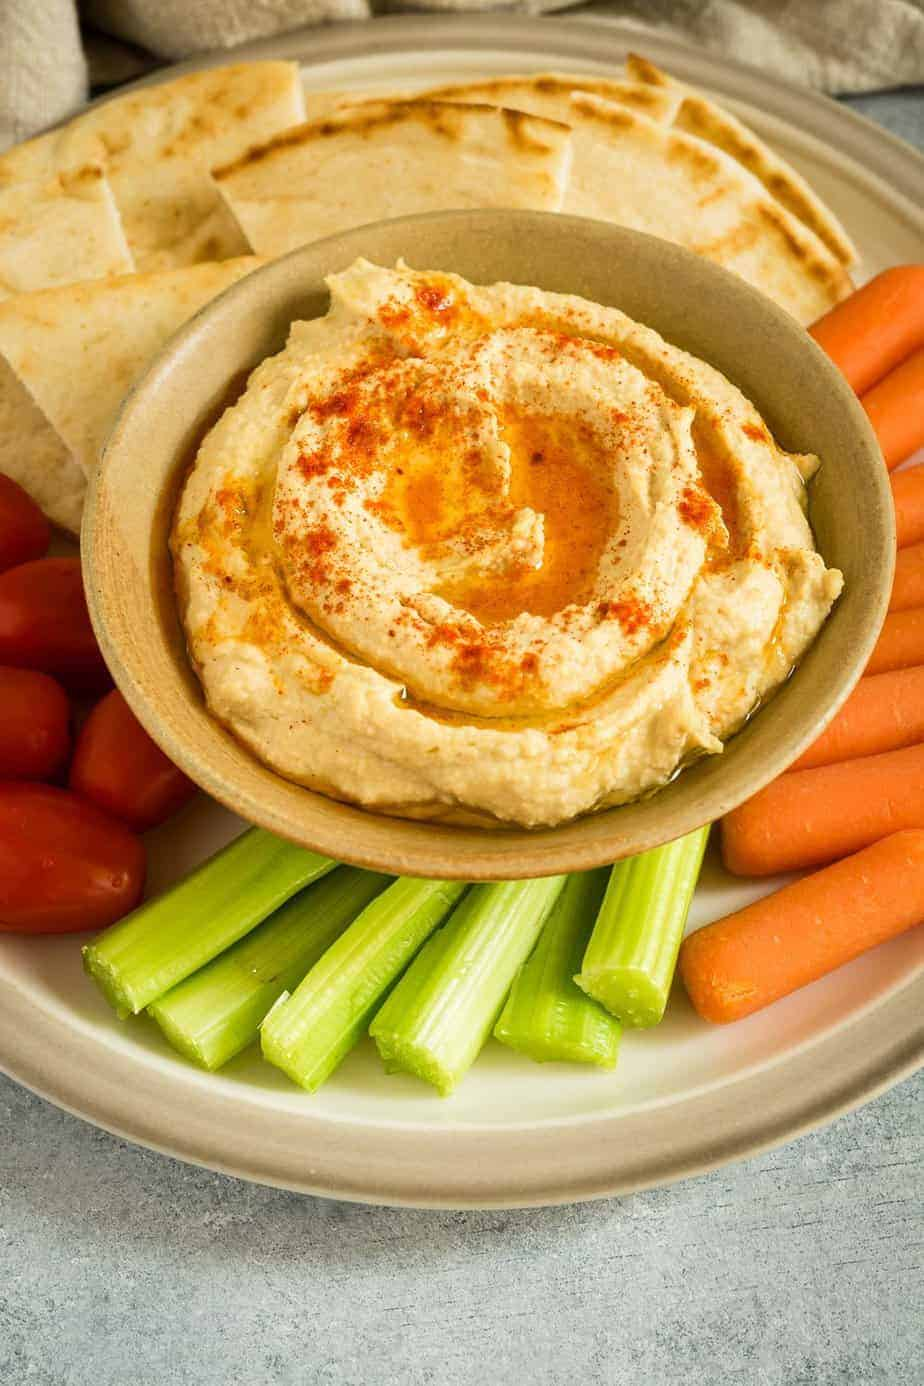 instant pot hummus serve with pitta bread, carrots, celery and cherry tomatoes.